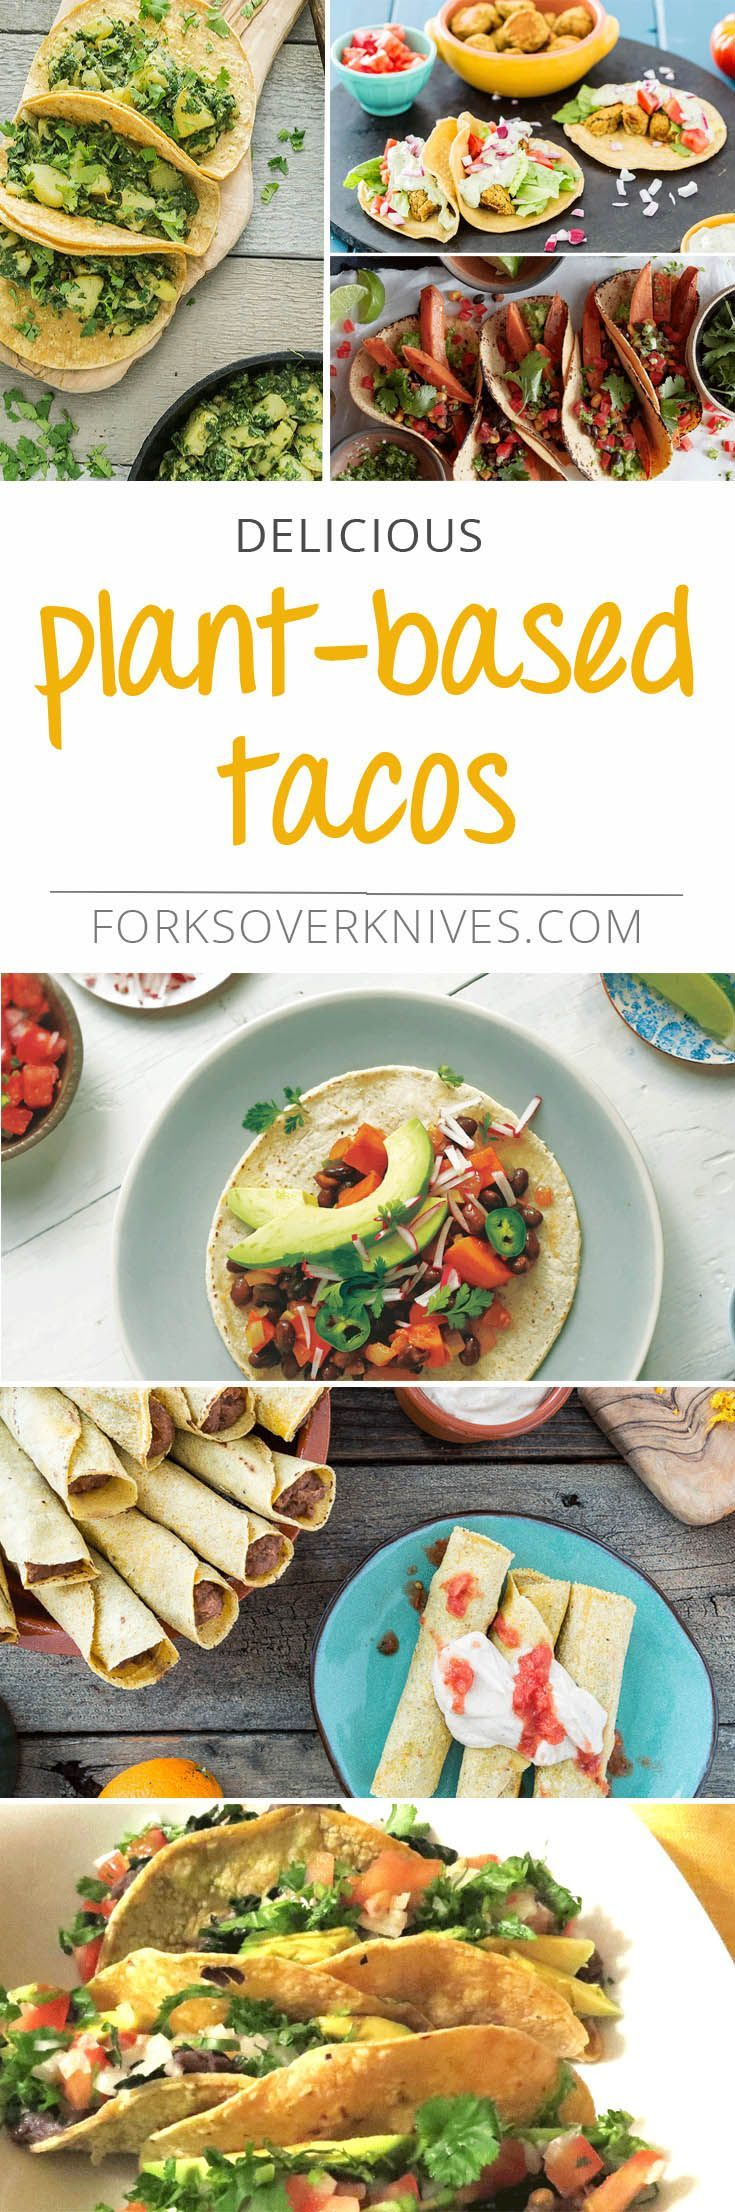 Who said tacos have to be filled with shredded meat and cheese? Certainly no one in Mexico! These tacos are tasty and hit the spot any day of the week. Here are some of our favorite recipes to get your taste buds...  Read more